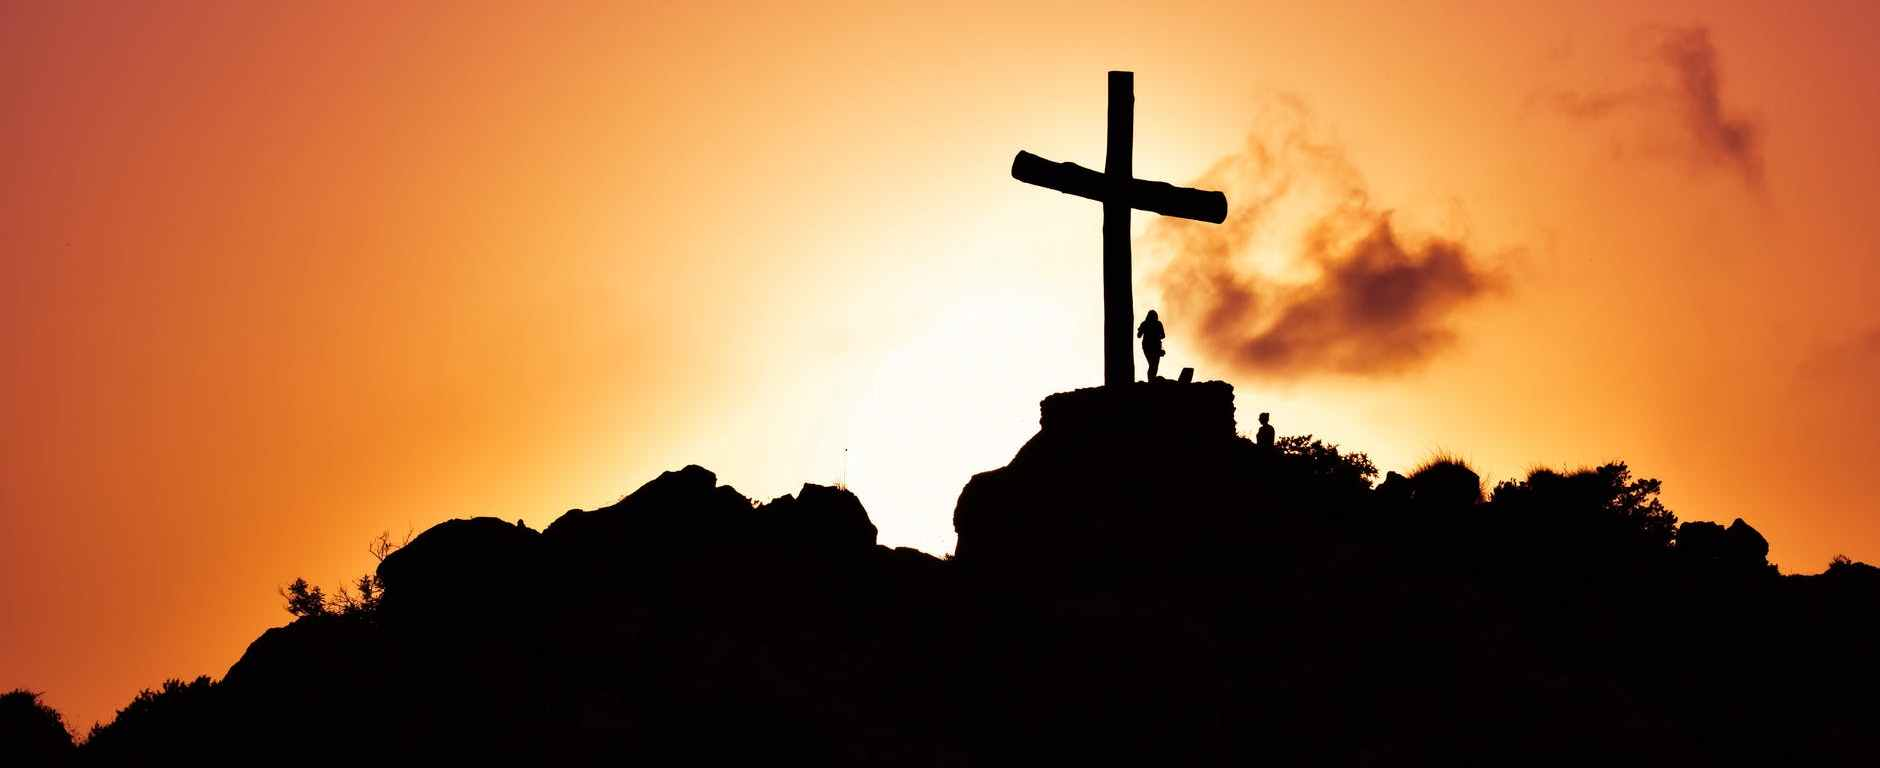 human standing beside crucifix statue on mountain